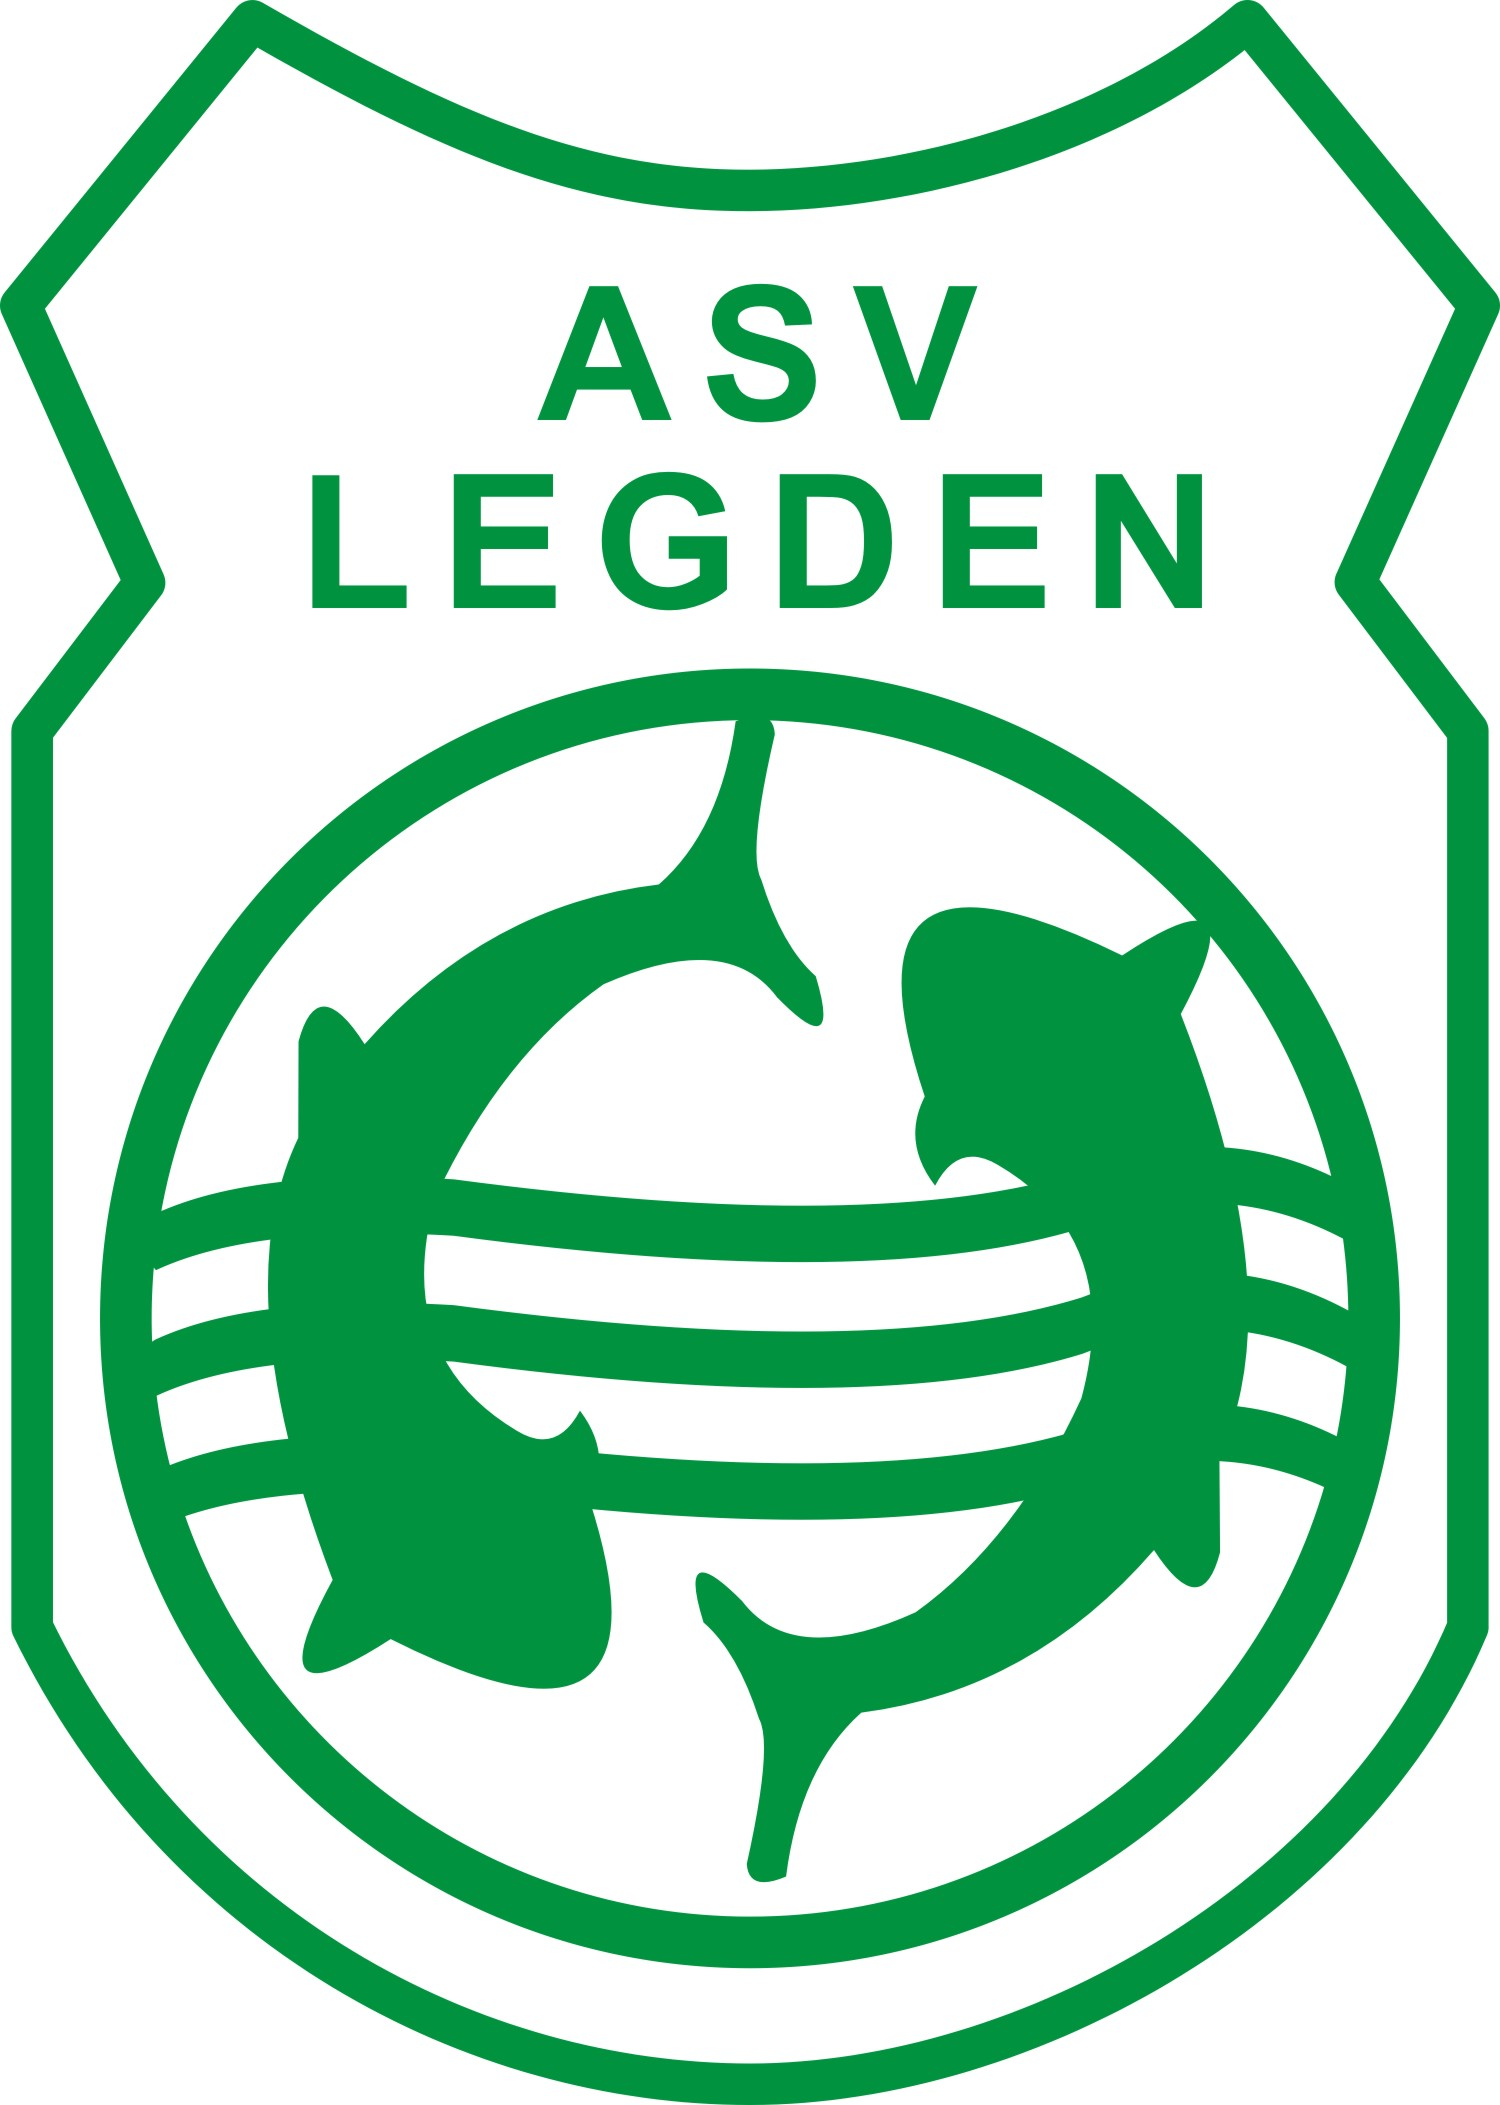 Angelsportverein Legden e.V.